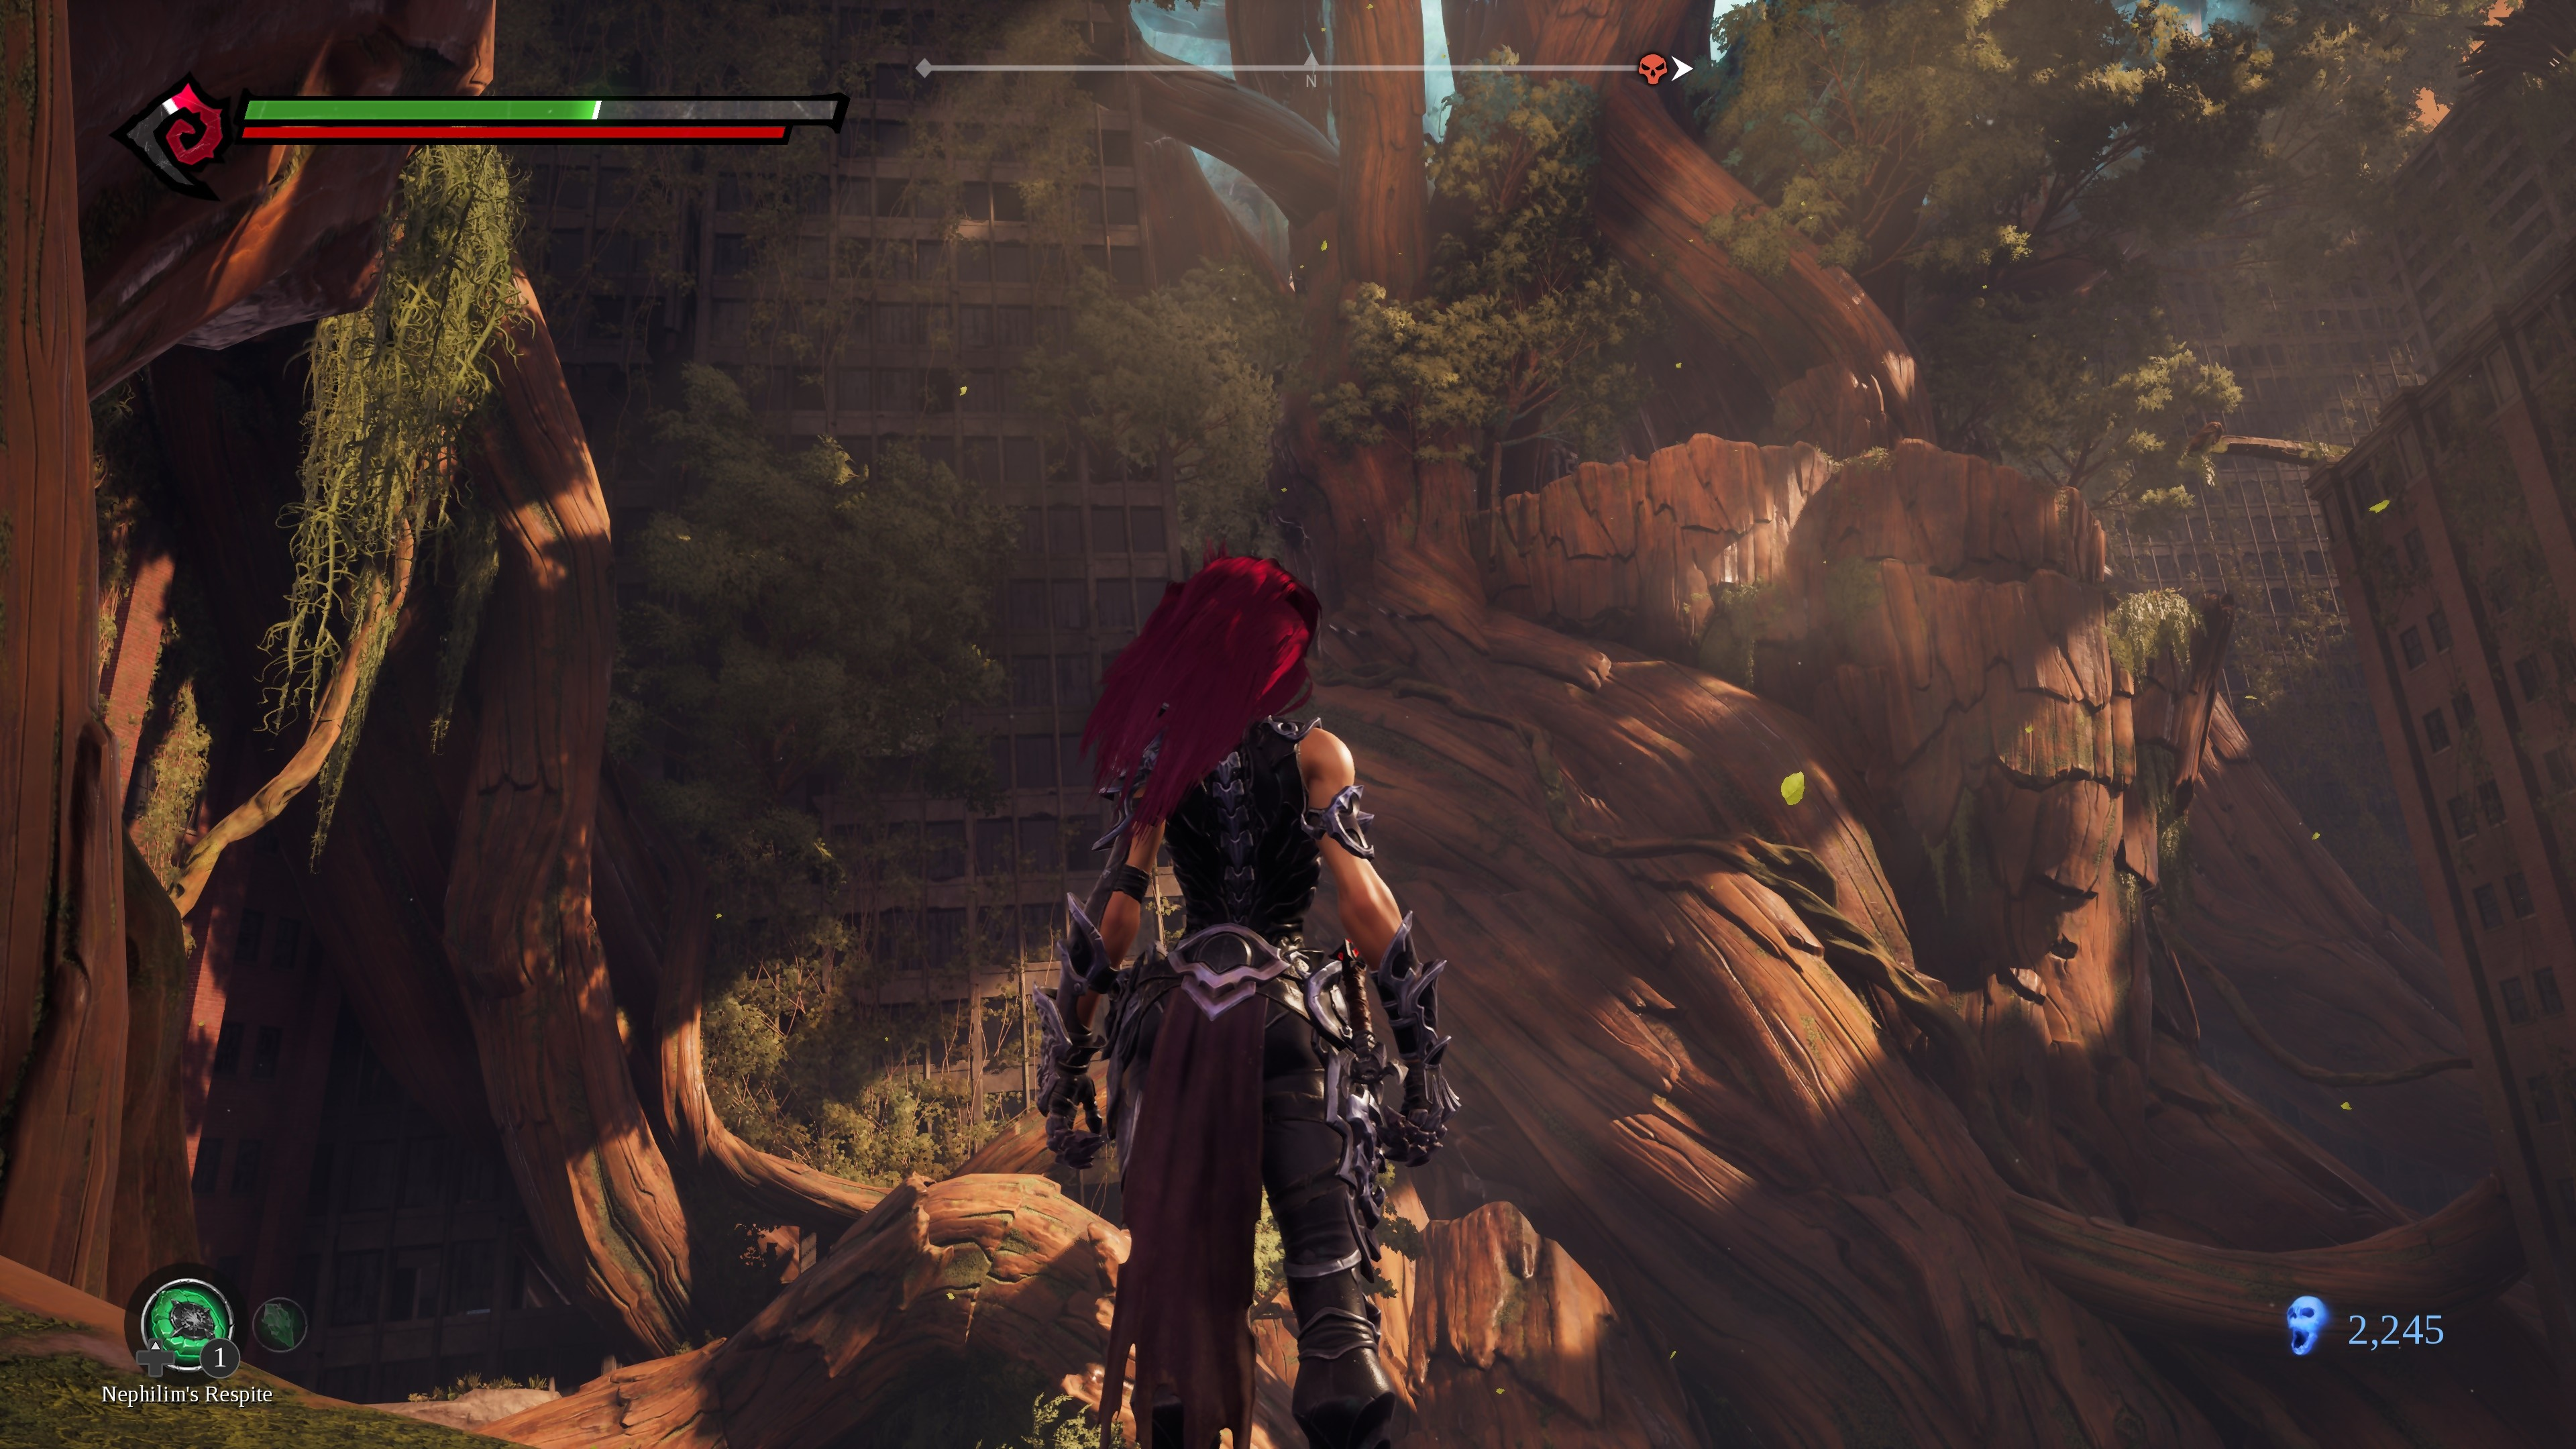 Darksiders 3 Pc Mods